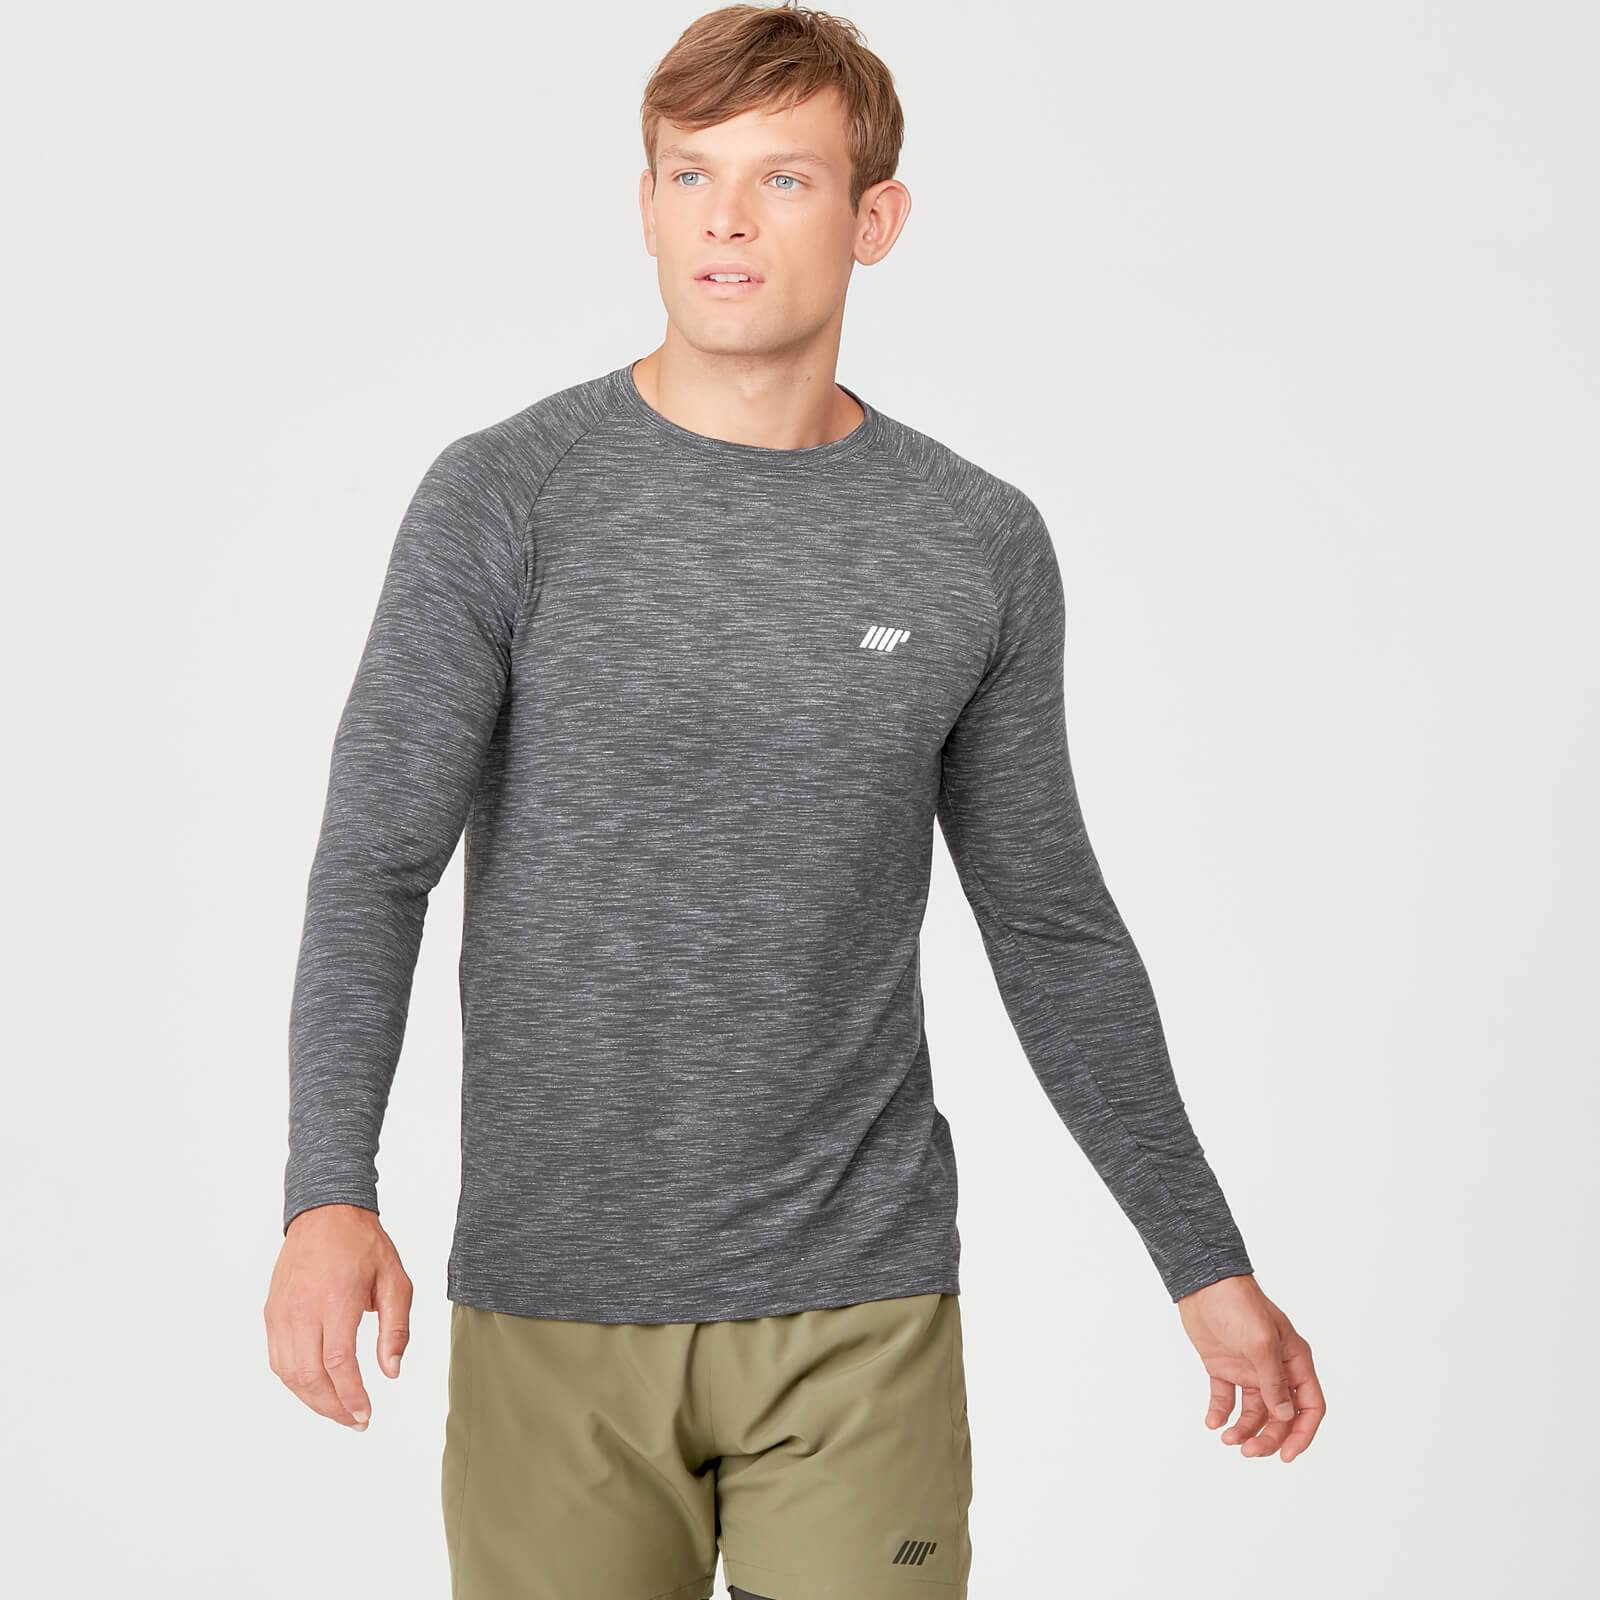 Myprotein Performance Long-Sleeve T-Shirt - Charcoal Marl - L